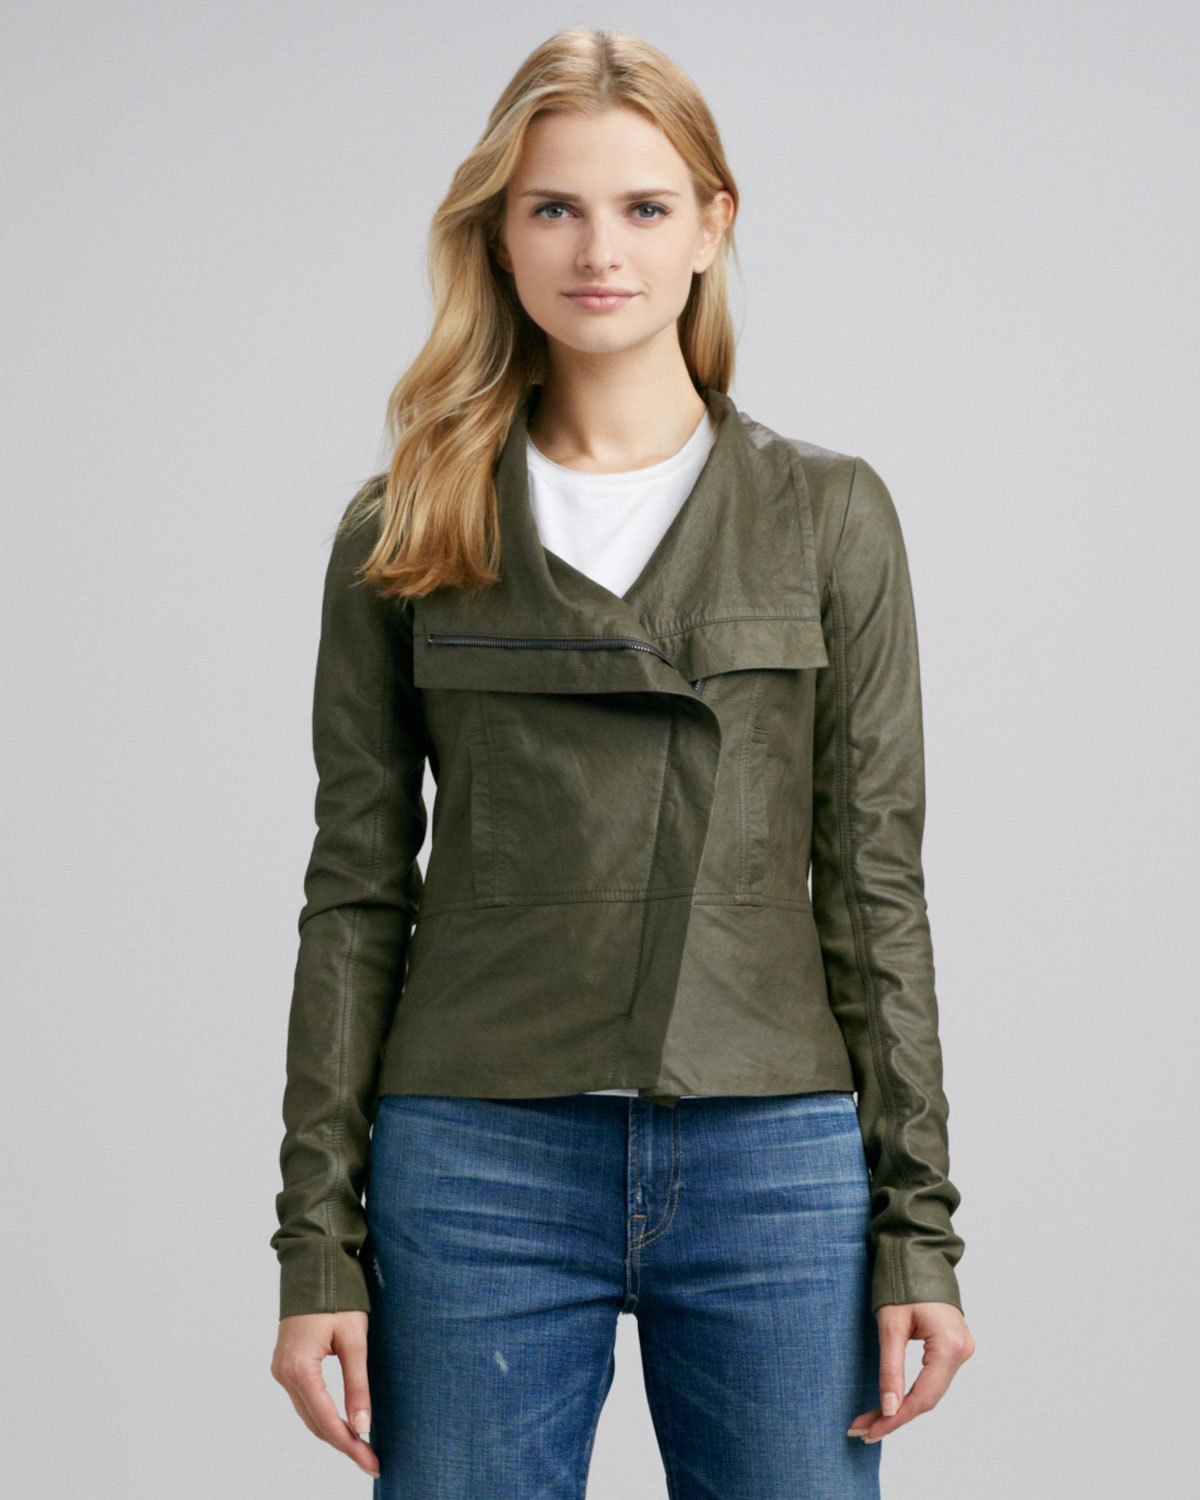 Olive Green Leather Jacket Womens